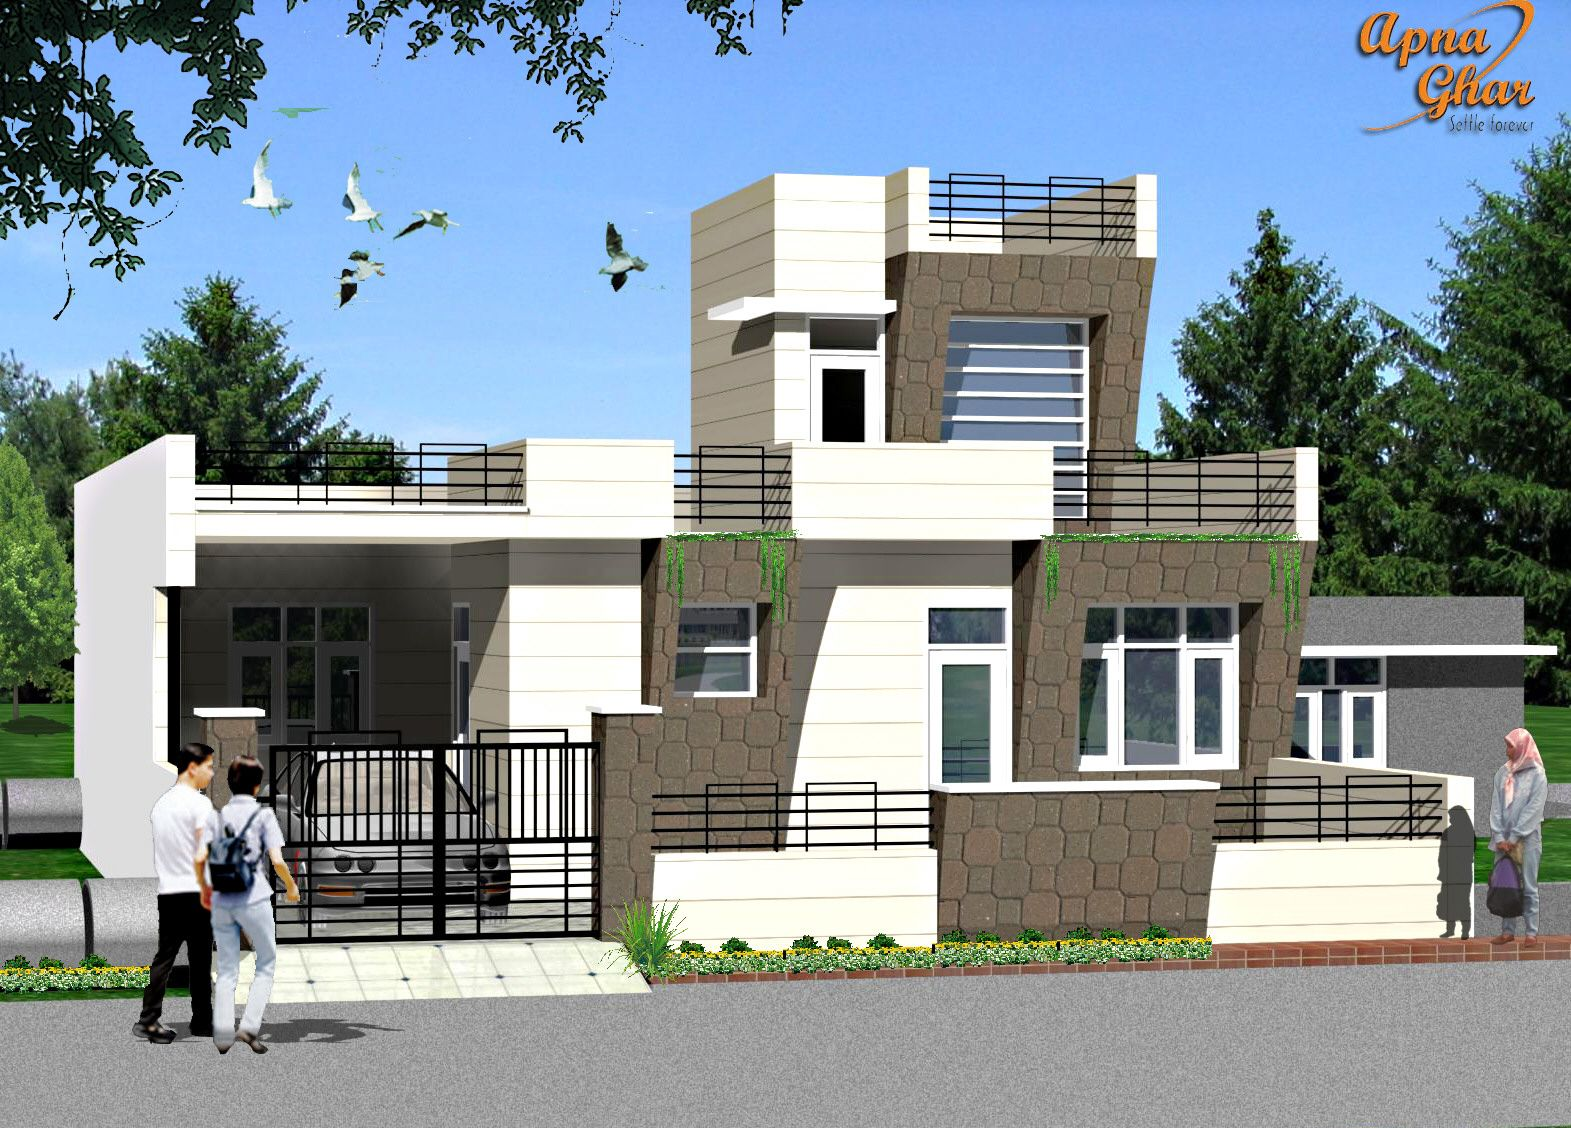 3 bedroom modern simplex 1 floor house design area Naksha for house construction